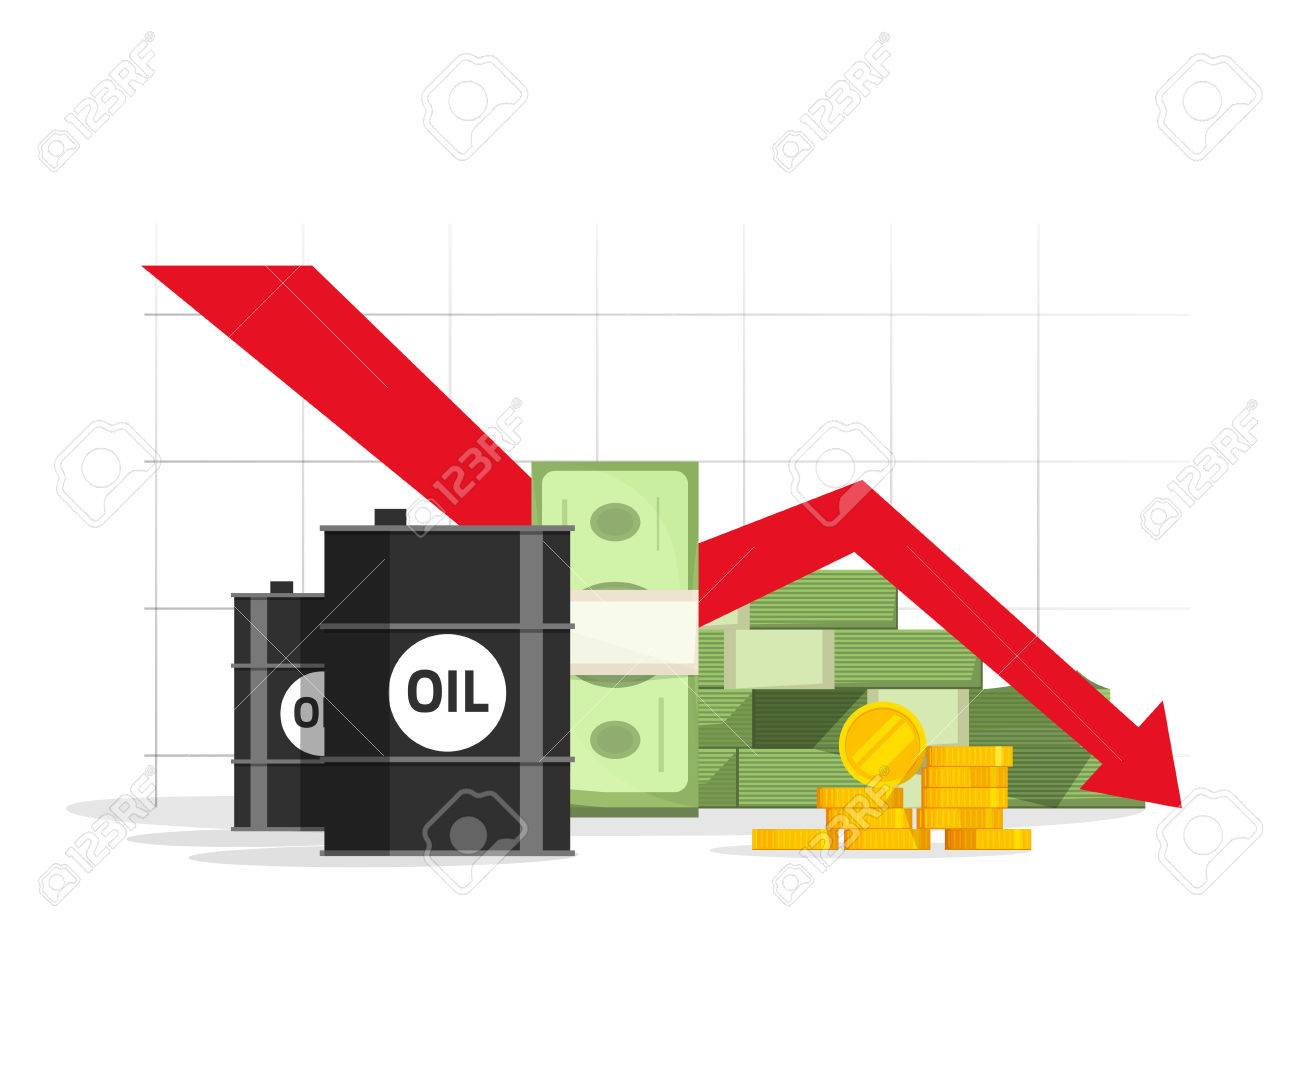 Oil money cash and gold with down arrow graph vector illustration oil money cash and gold with down arrow graph vector illustration concept economy crisis biocorpaavc Images